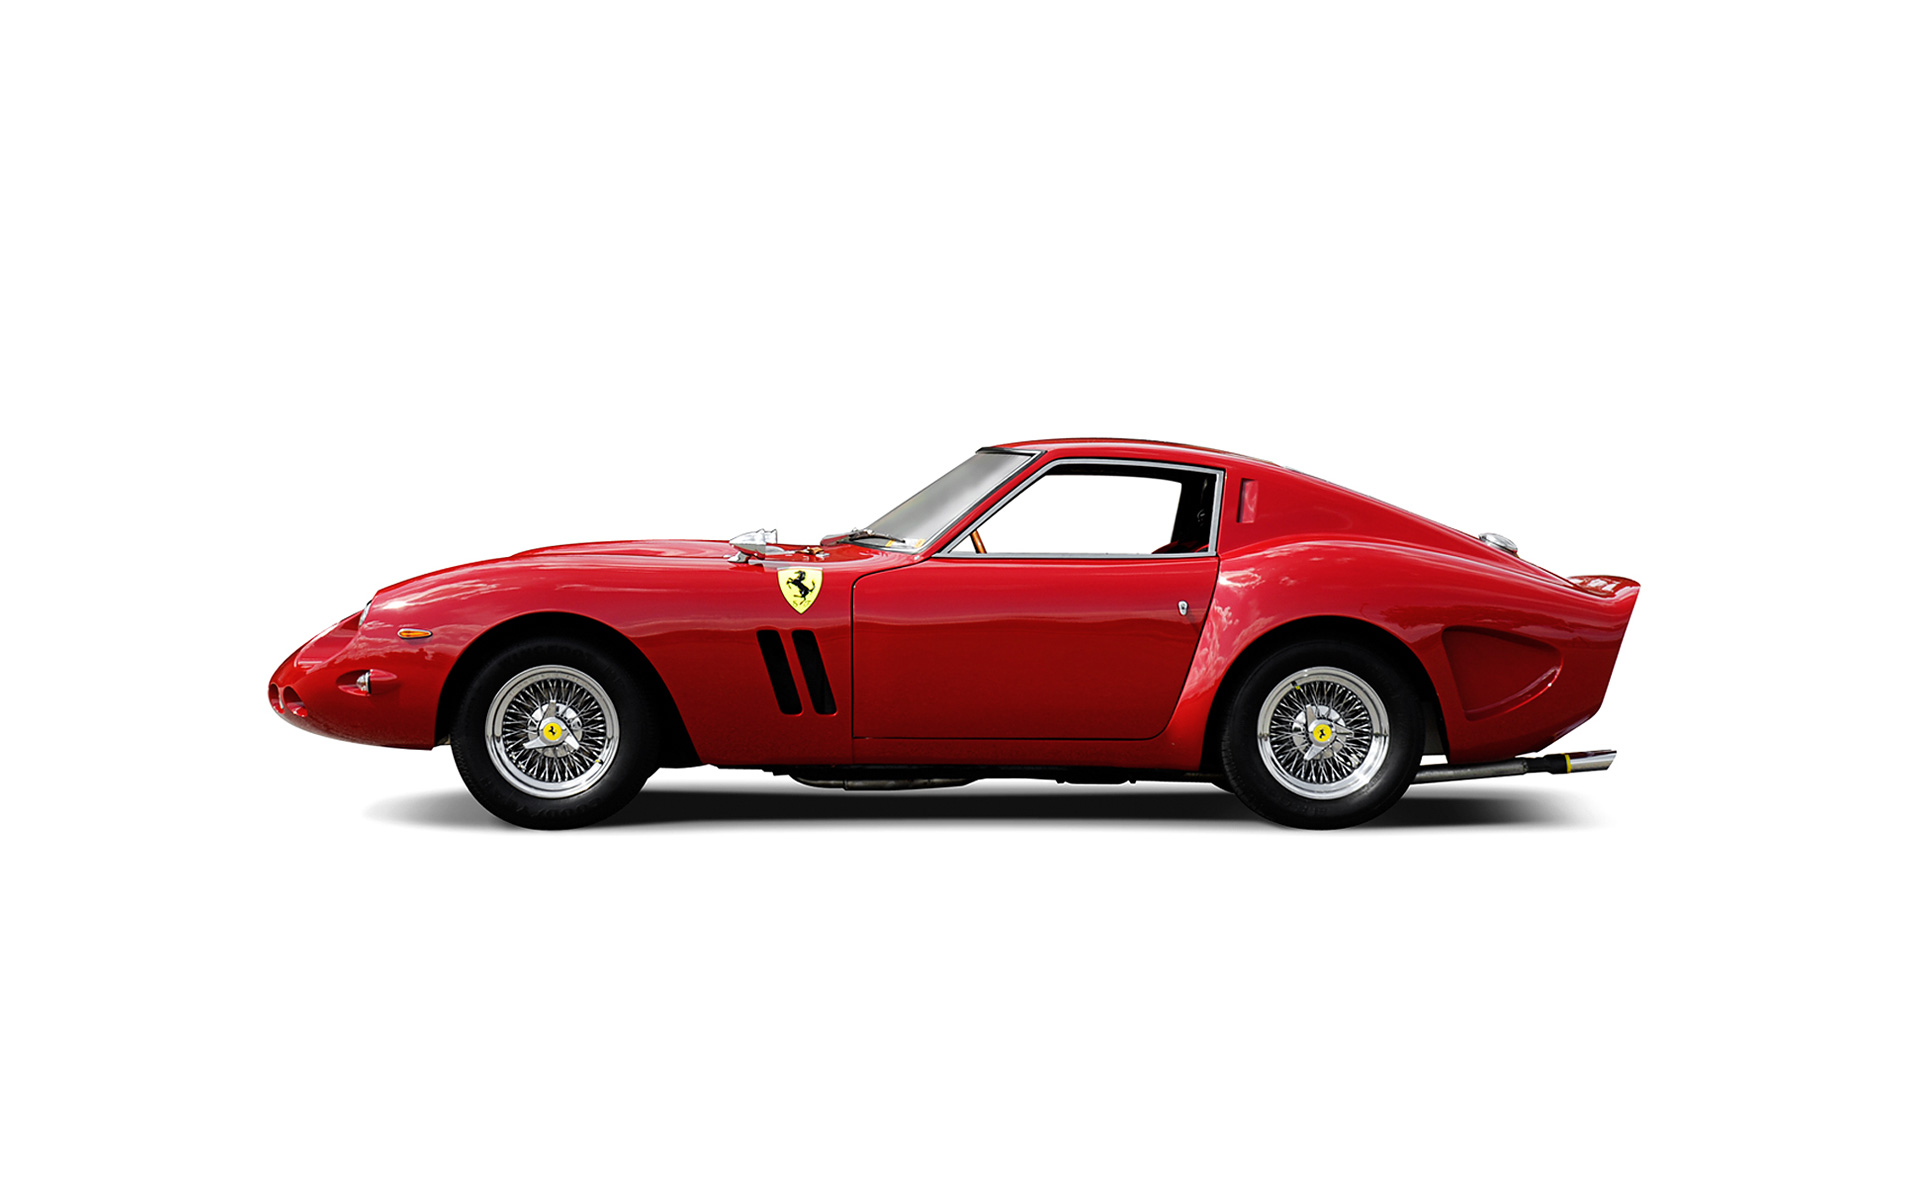 Worlds Most Expensive Car 1962 Ferrari 250 GTO Sold For 35